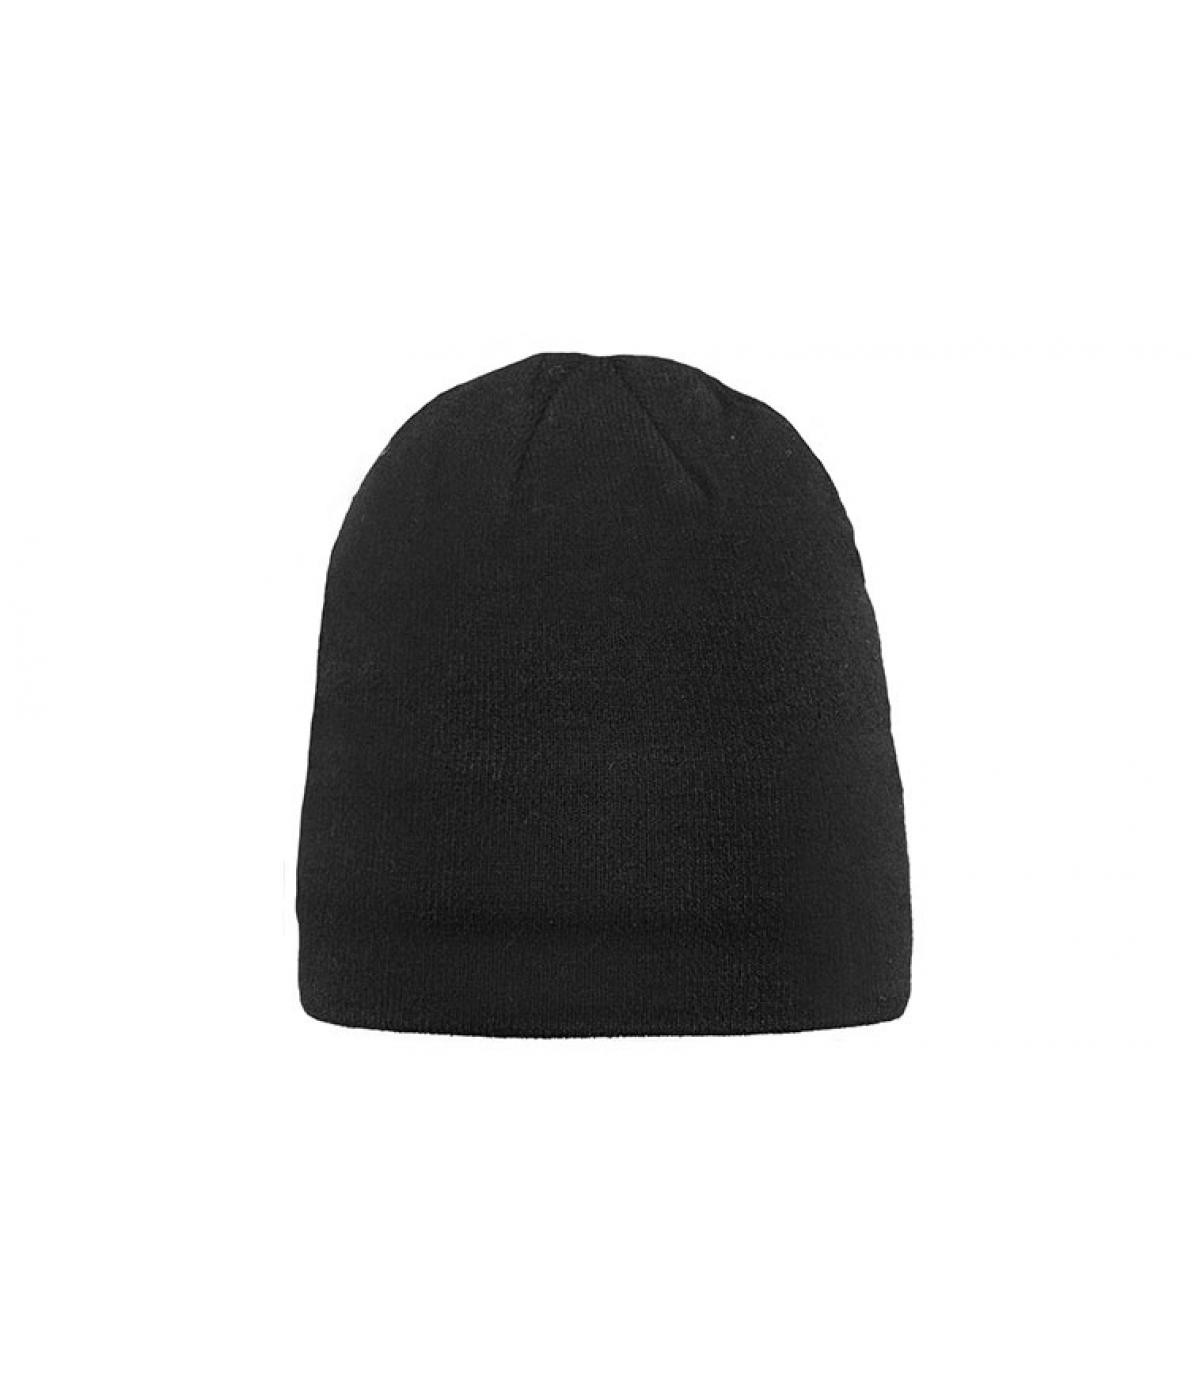 buy good on feet images of outlet store sale black beanie Barts - Core Beanie black by Barts. Headict